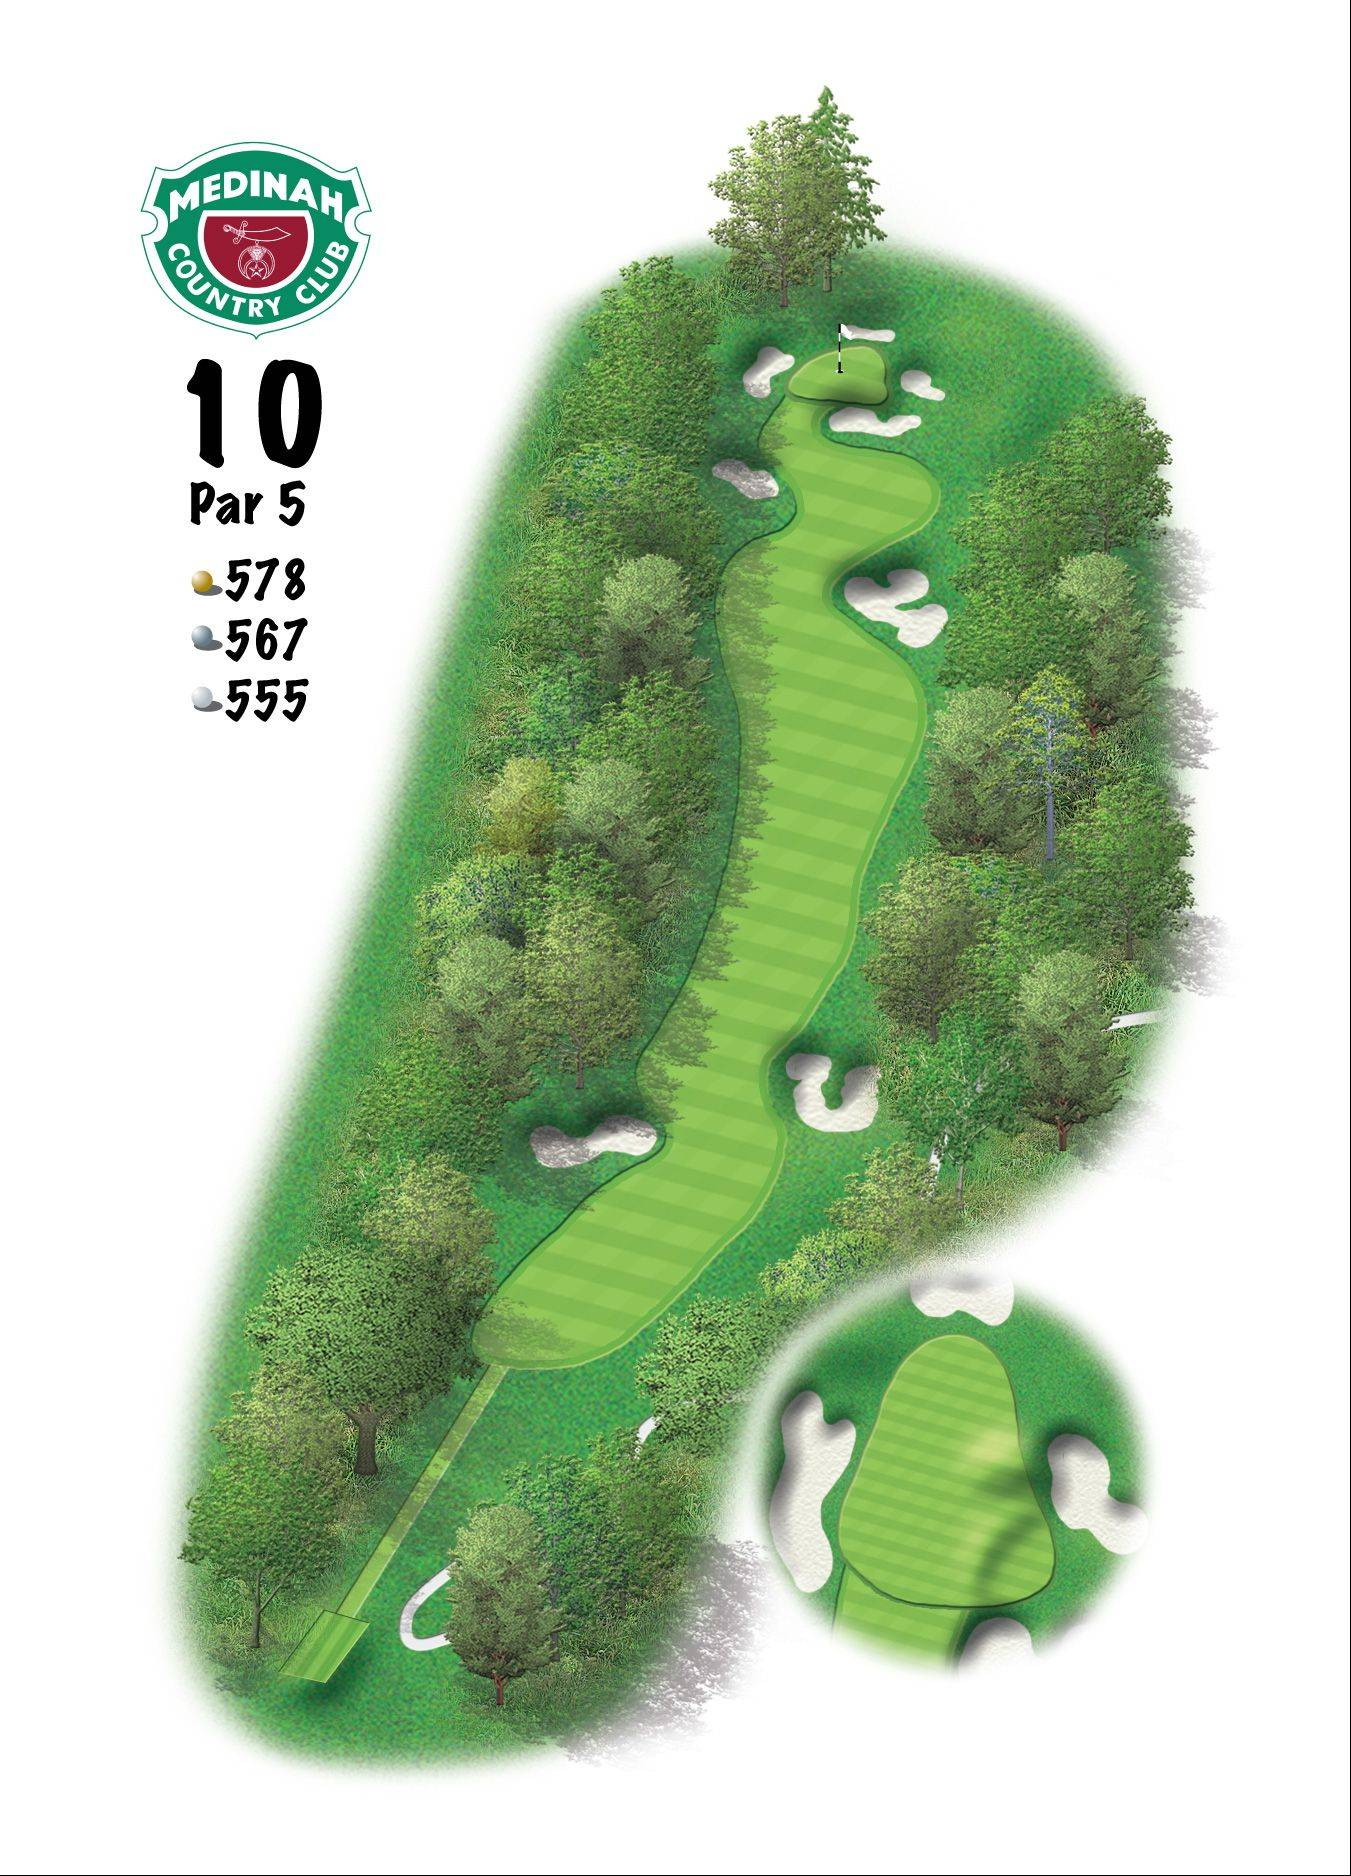 Hole 10 of the Ryder Cup course at Medinah. 578 yards/529 meters, Par-5, A thinking man's par-5 that can be reached in two, this hole demands that both be great shots. Club choice might include 3-wood to take the bunkers out of play, and then hitting a hybrid or long iron to a conservative lay-up will make the third shot a little easier.